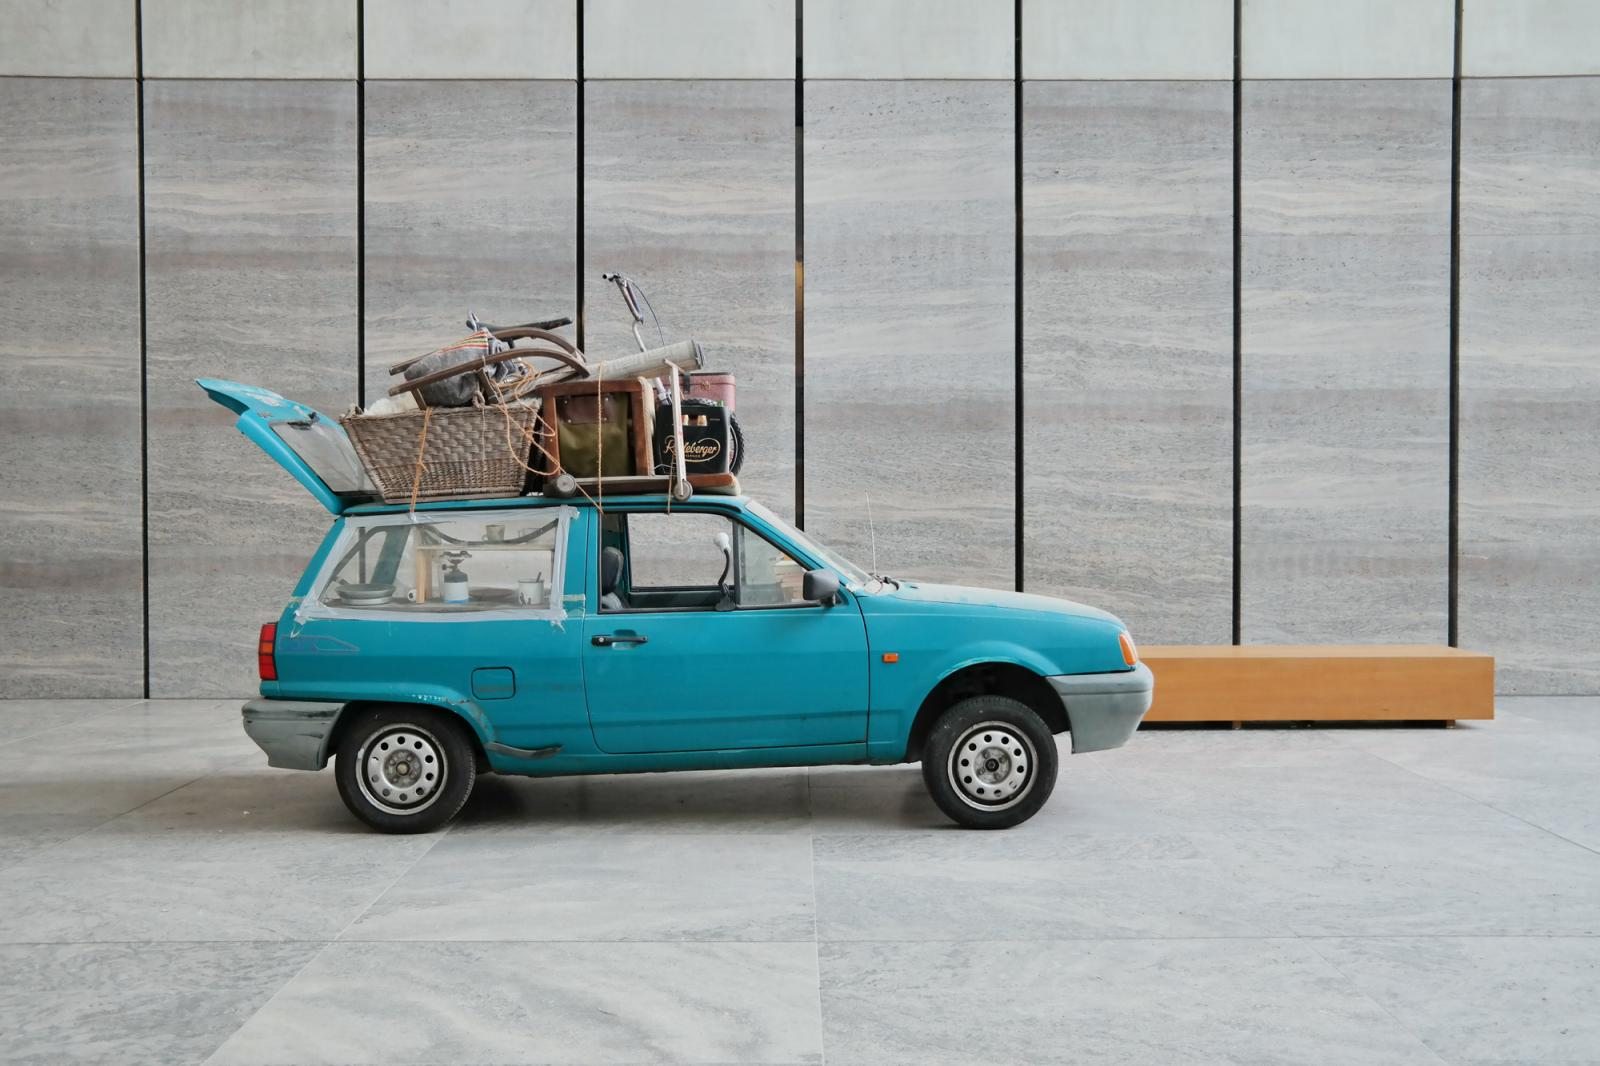 Manaf Halbouni /Nowhere is home/ (2015) Courtesy the artist